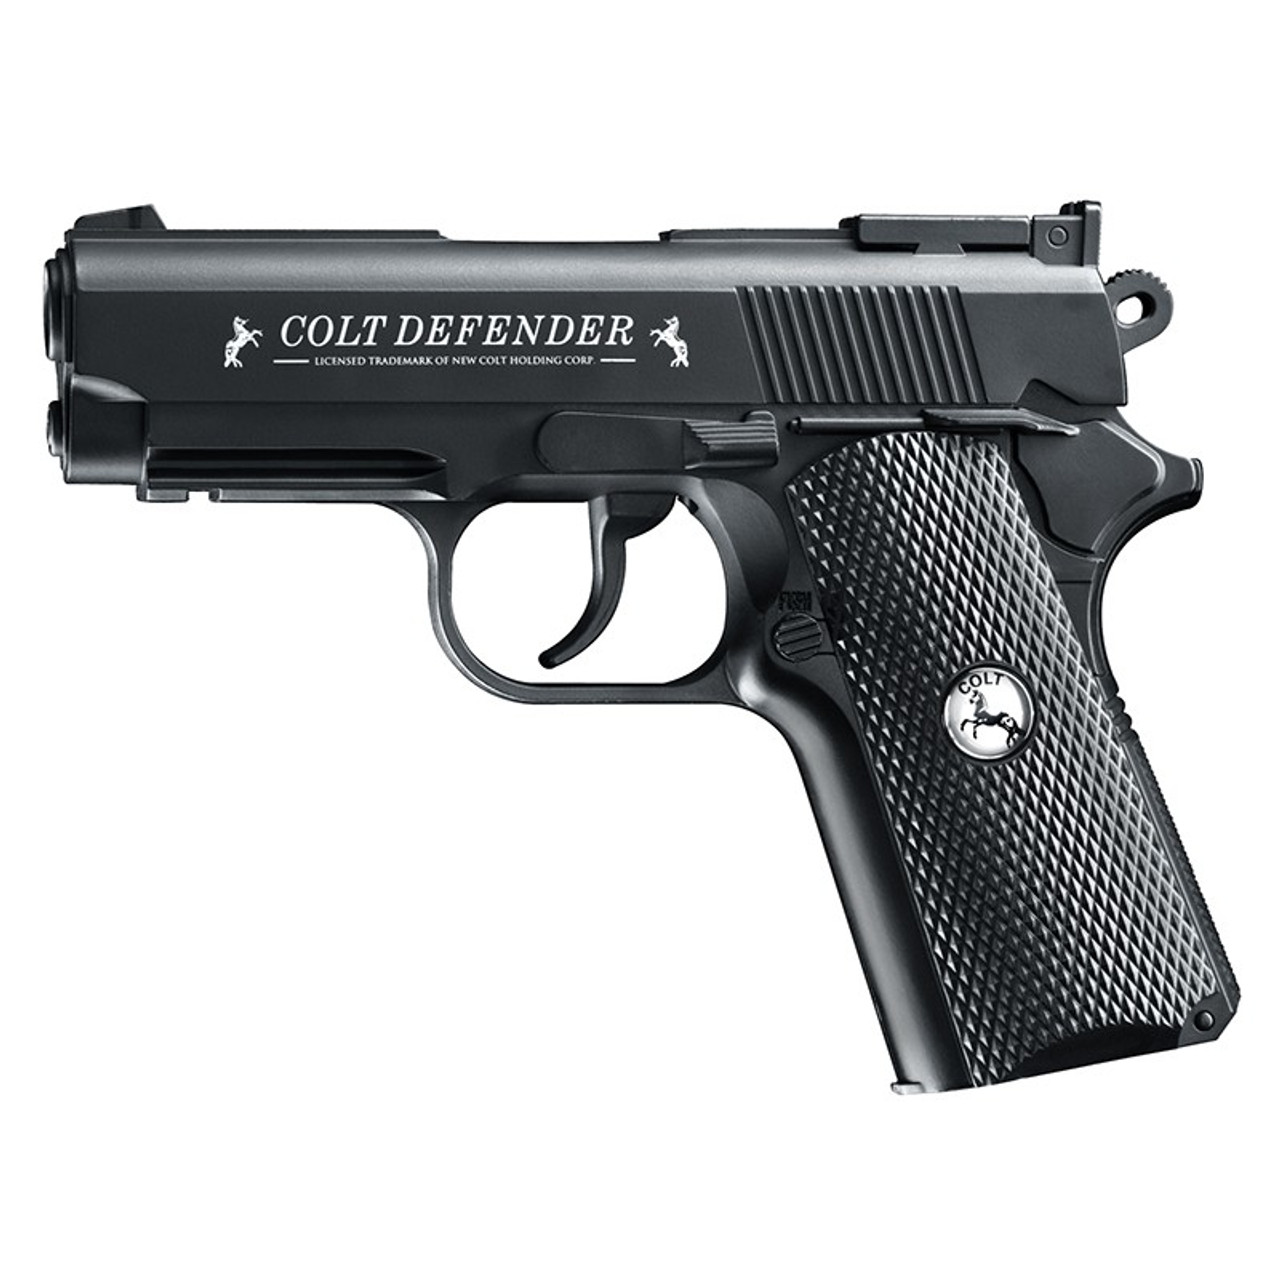 Best price for Colt defender, on sale at Bradford Stalker